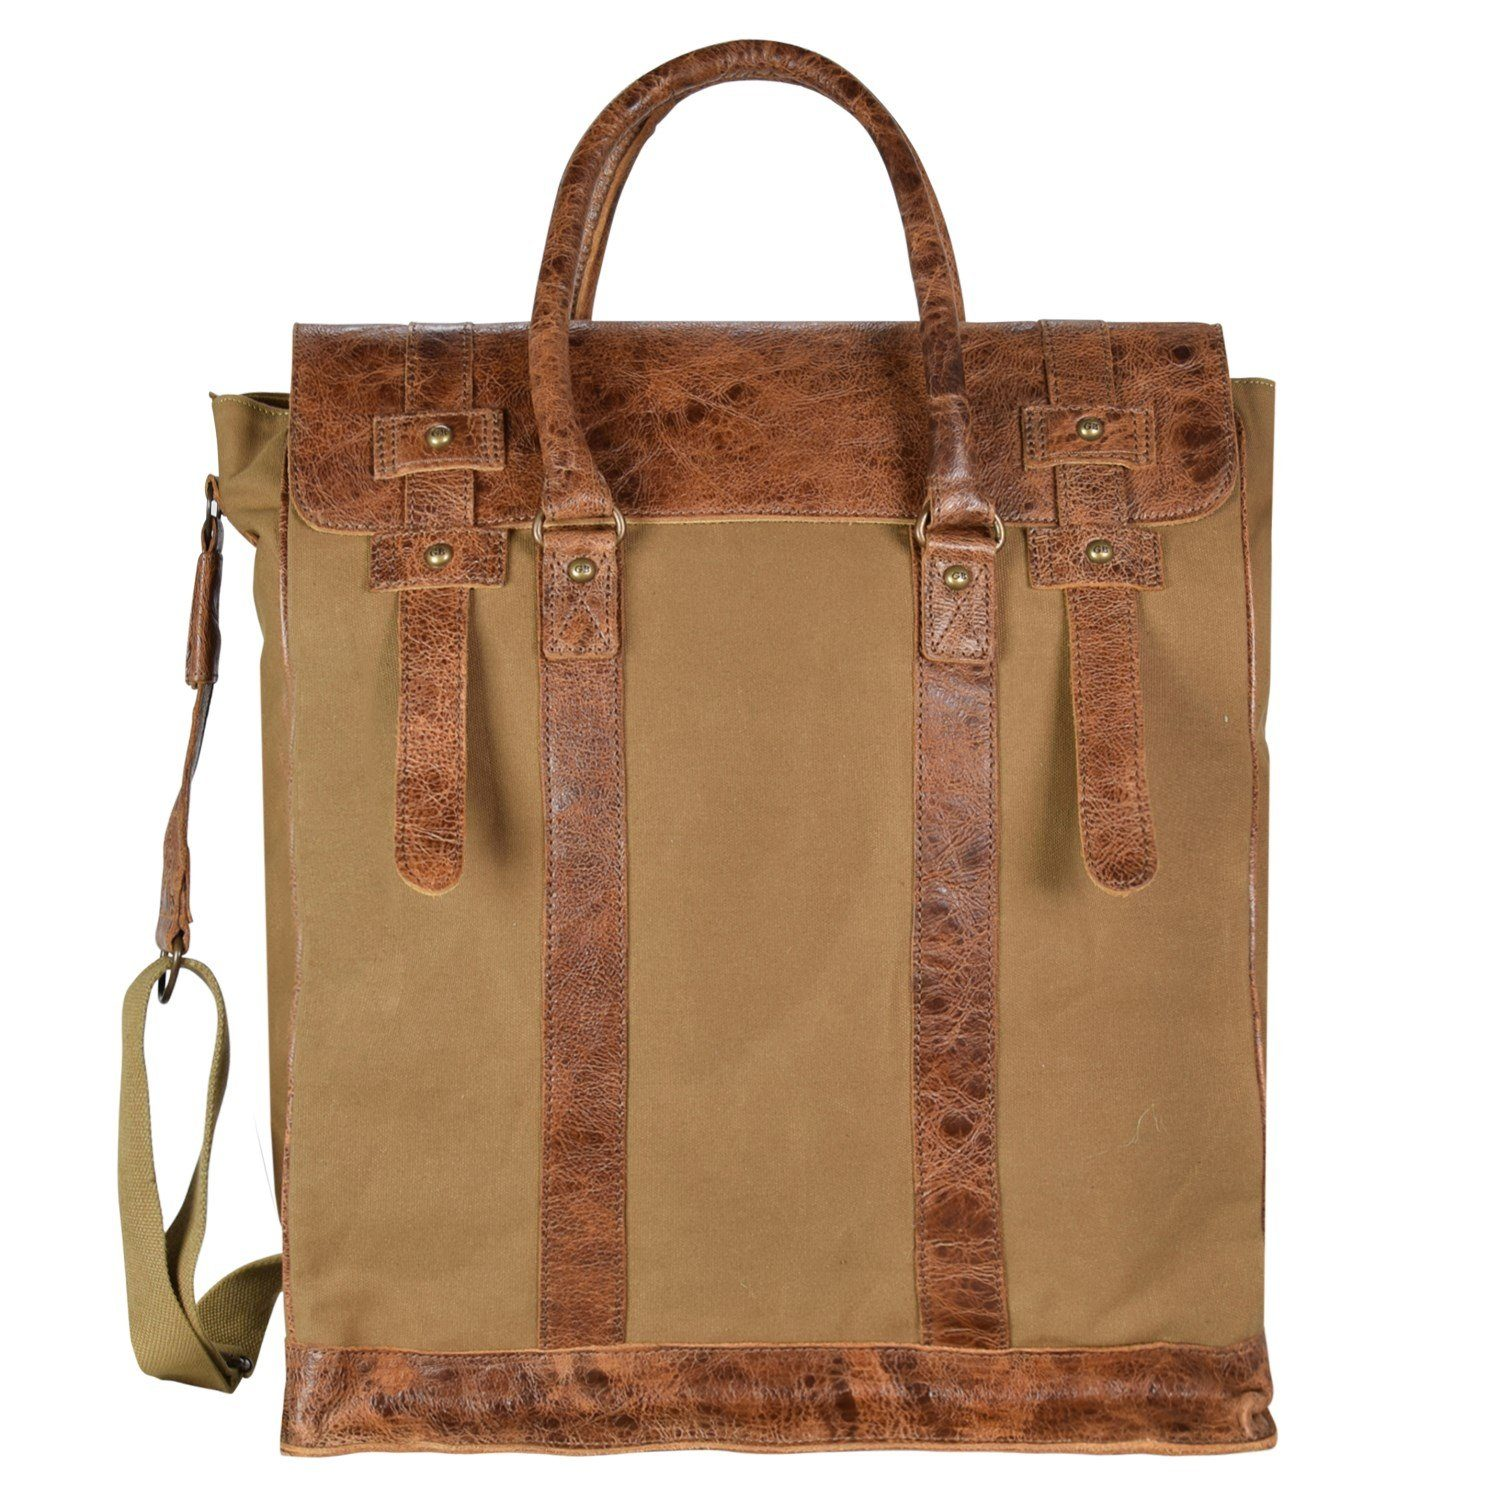 Greenburry White Spirit Flathead I Handtasche 42 cm Tabletfach